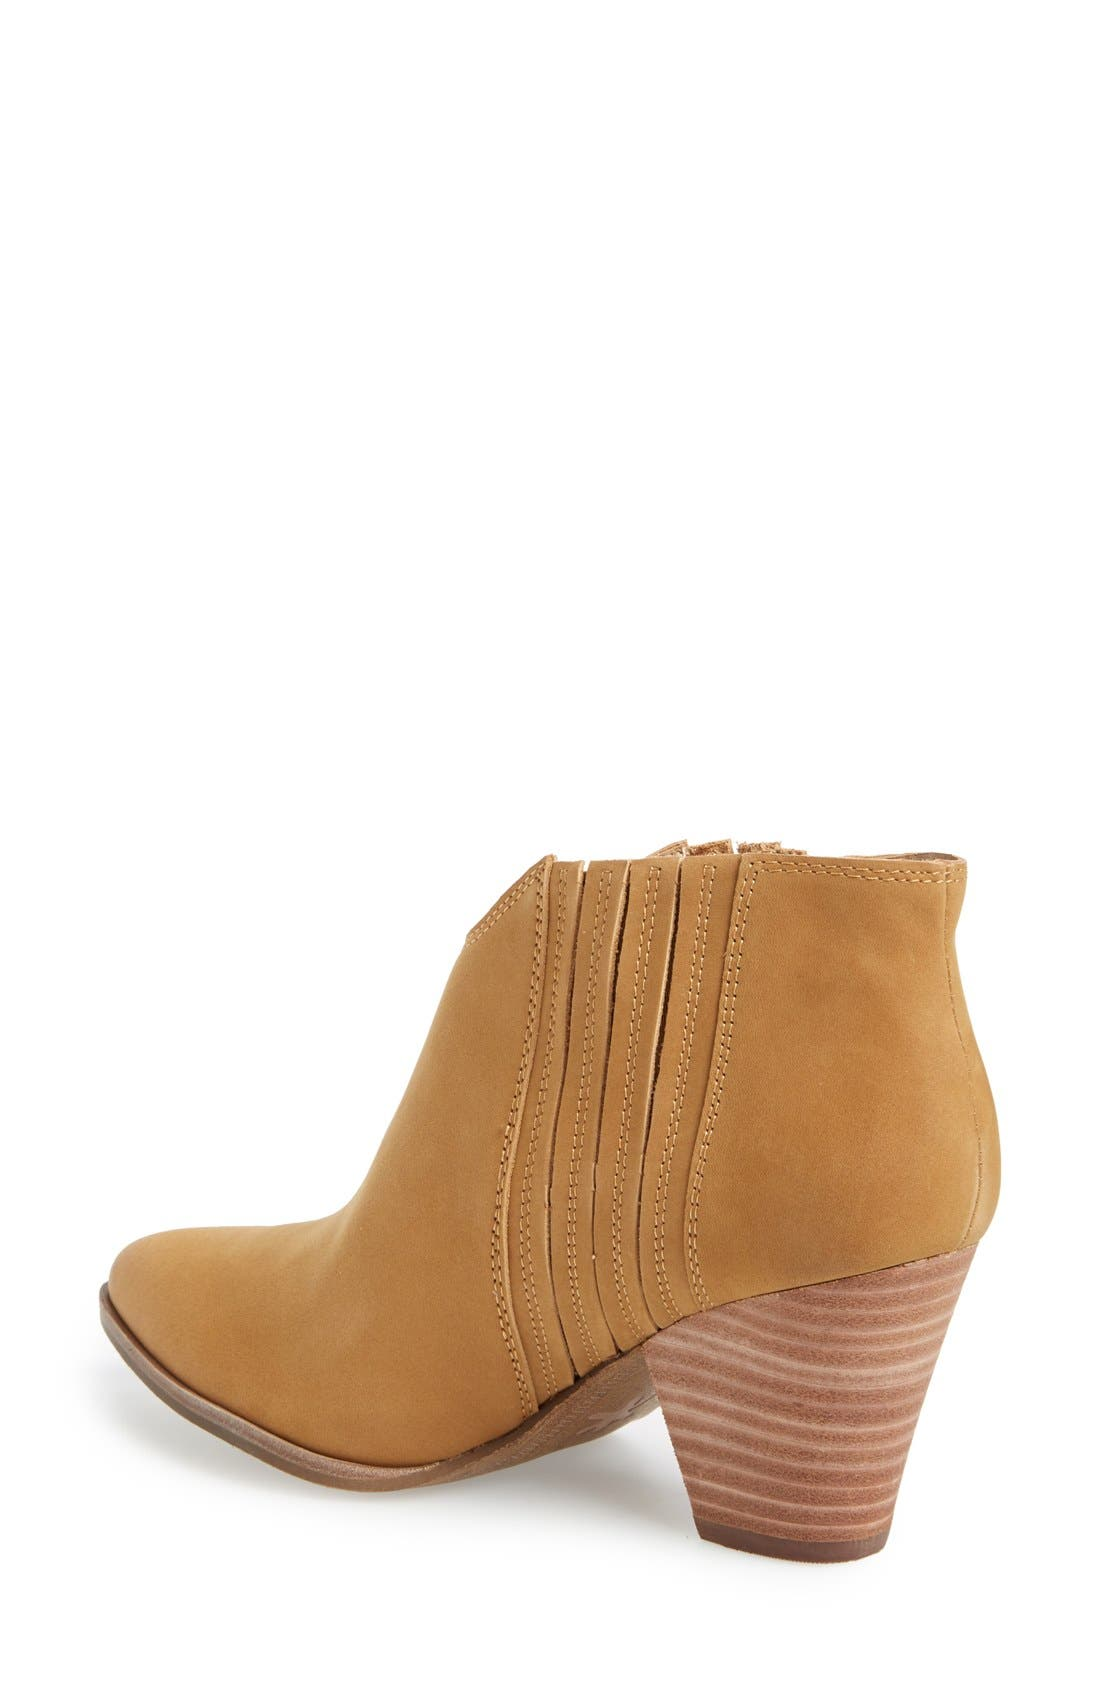 'Addie' Pointy Toe Ankle Bootie,                             Alternate thumbnail 11, color,